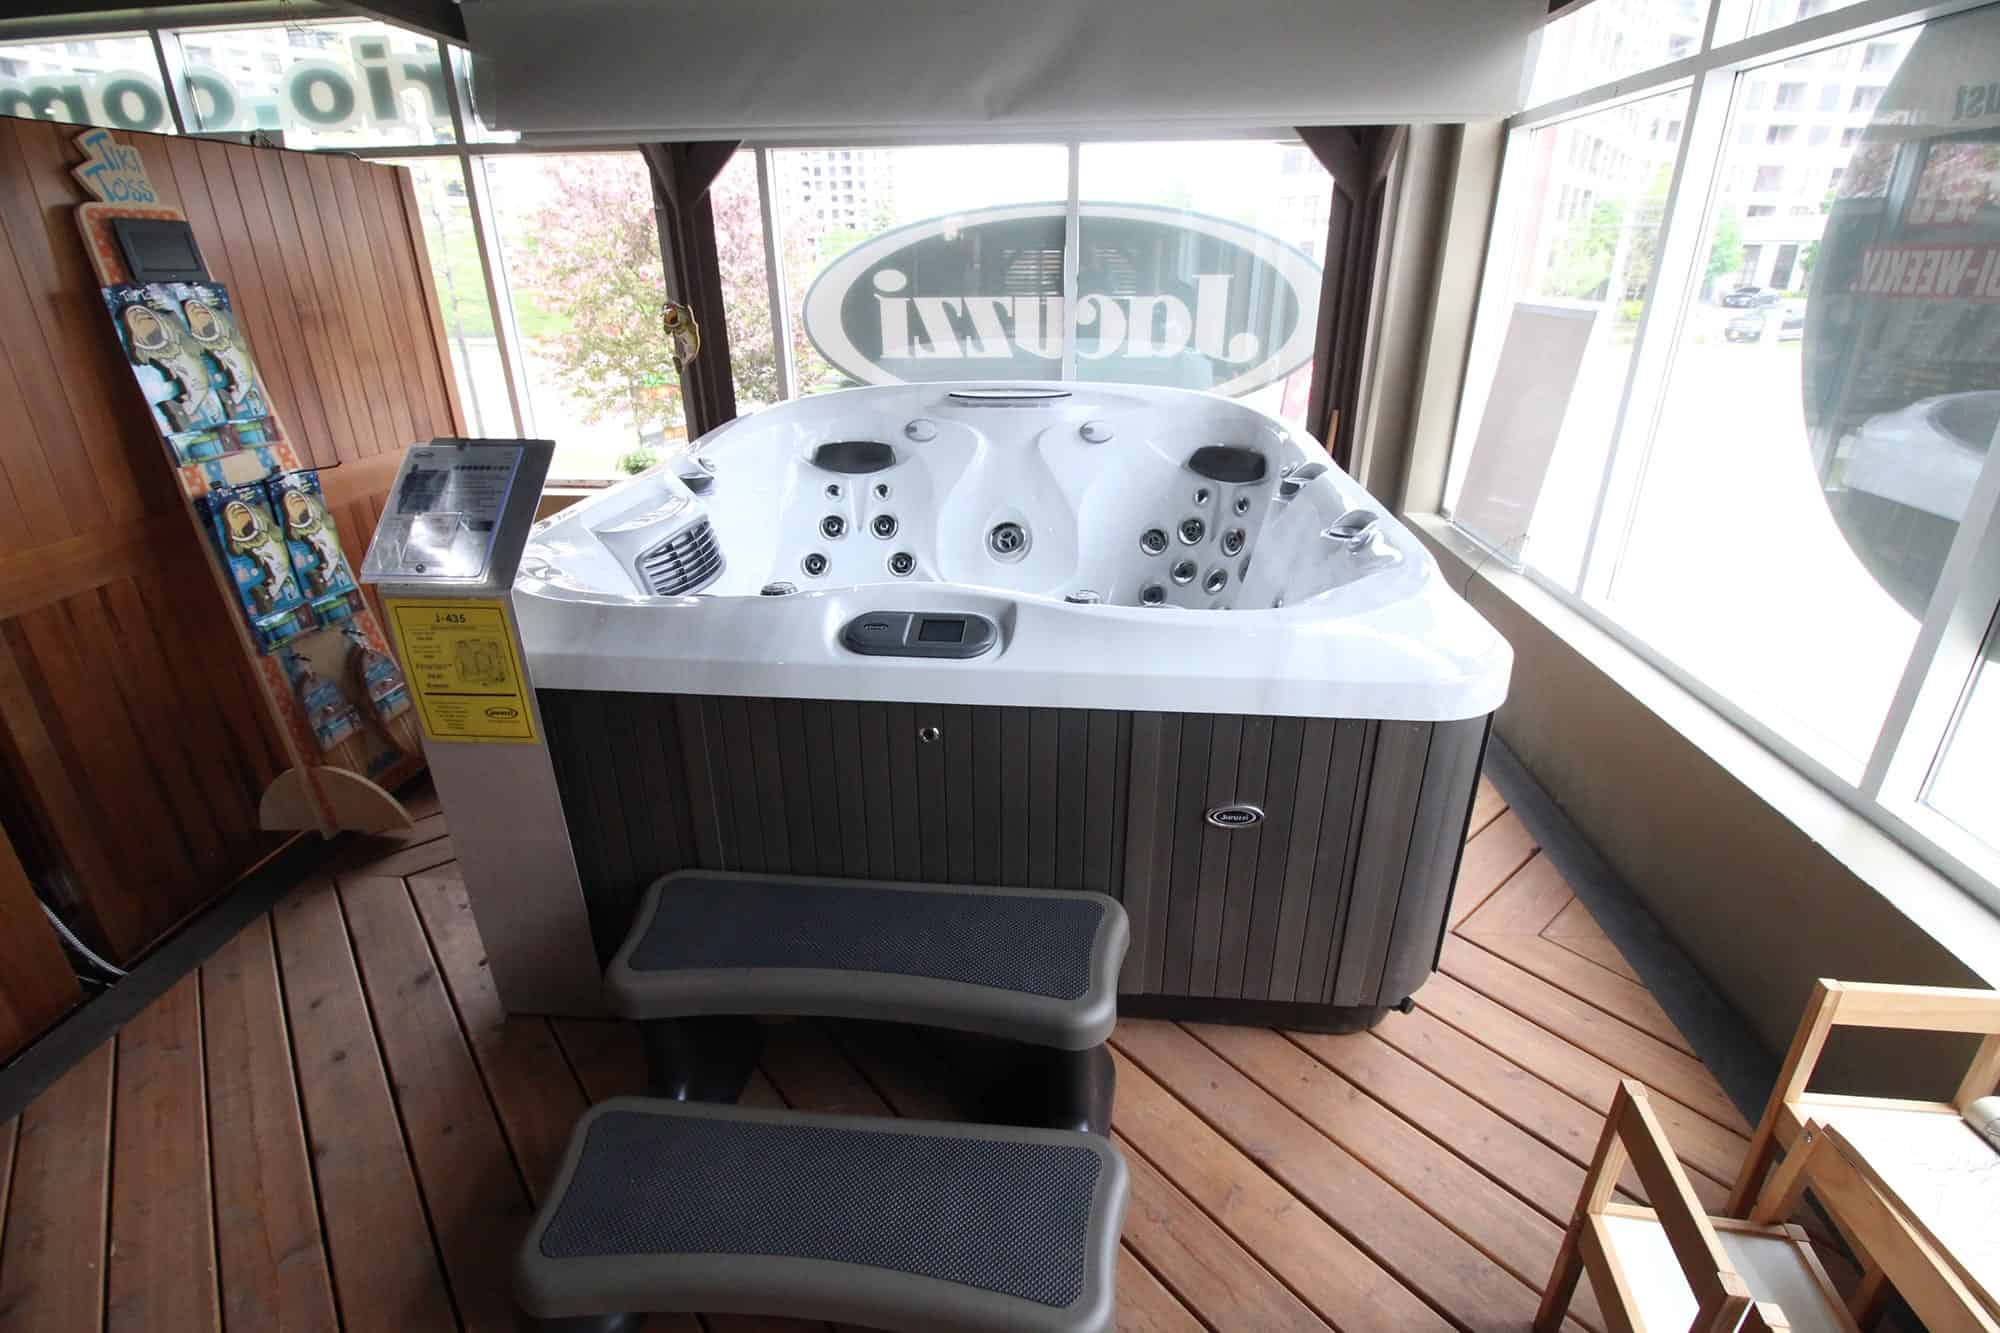 Jacuzzi Vaughan hot tub showroom